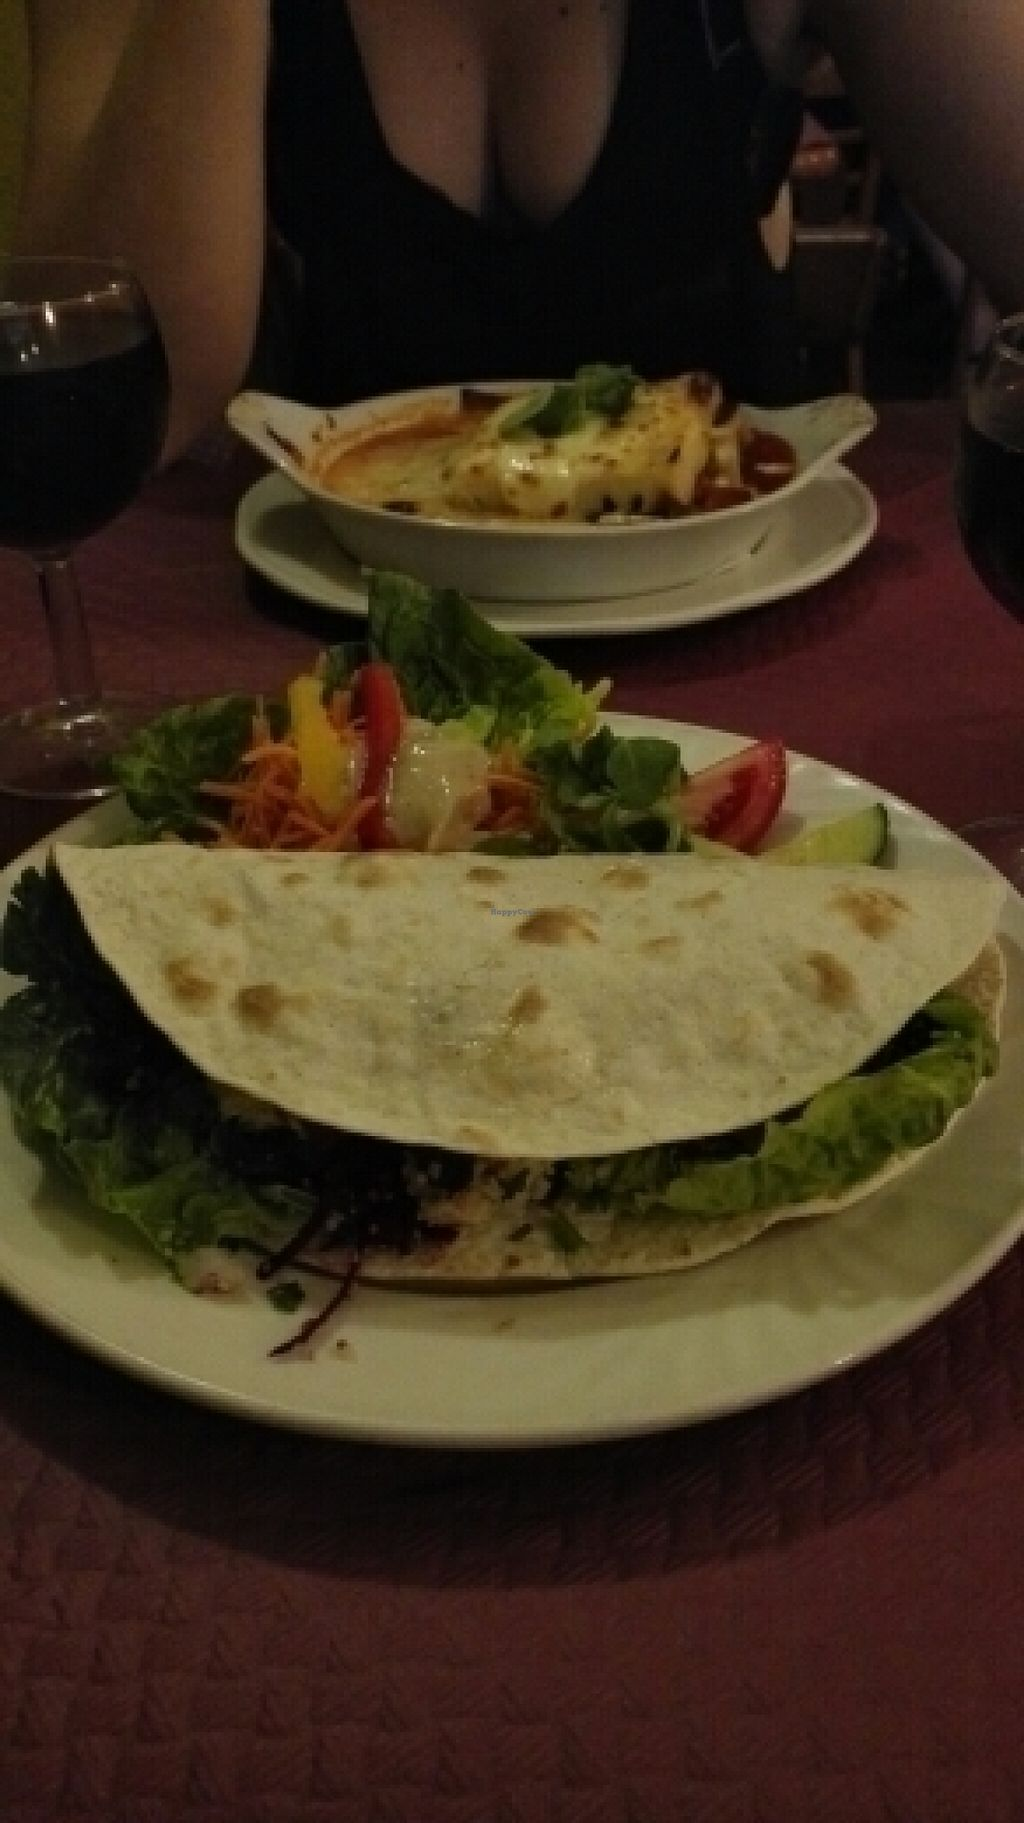 "Photo of Beet Vegetariano  by <a href=""/members/profile/VeganVenturer"">VeganVenturer</a> <br/>Burrito and lasagne <br/> July 15, 2016  - <a href='/contact/abuse/image/1102/160036'>Report</a>"